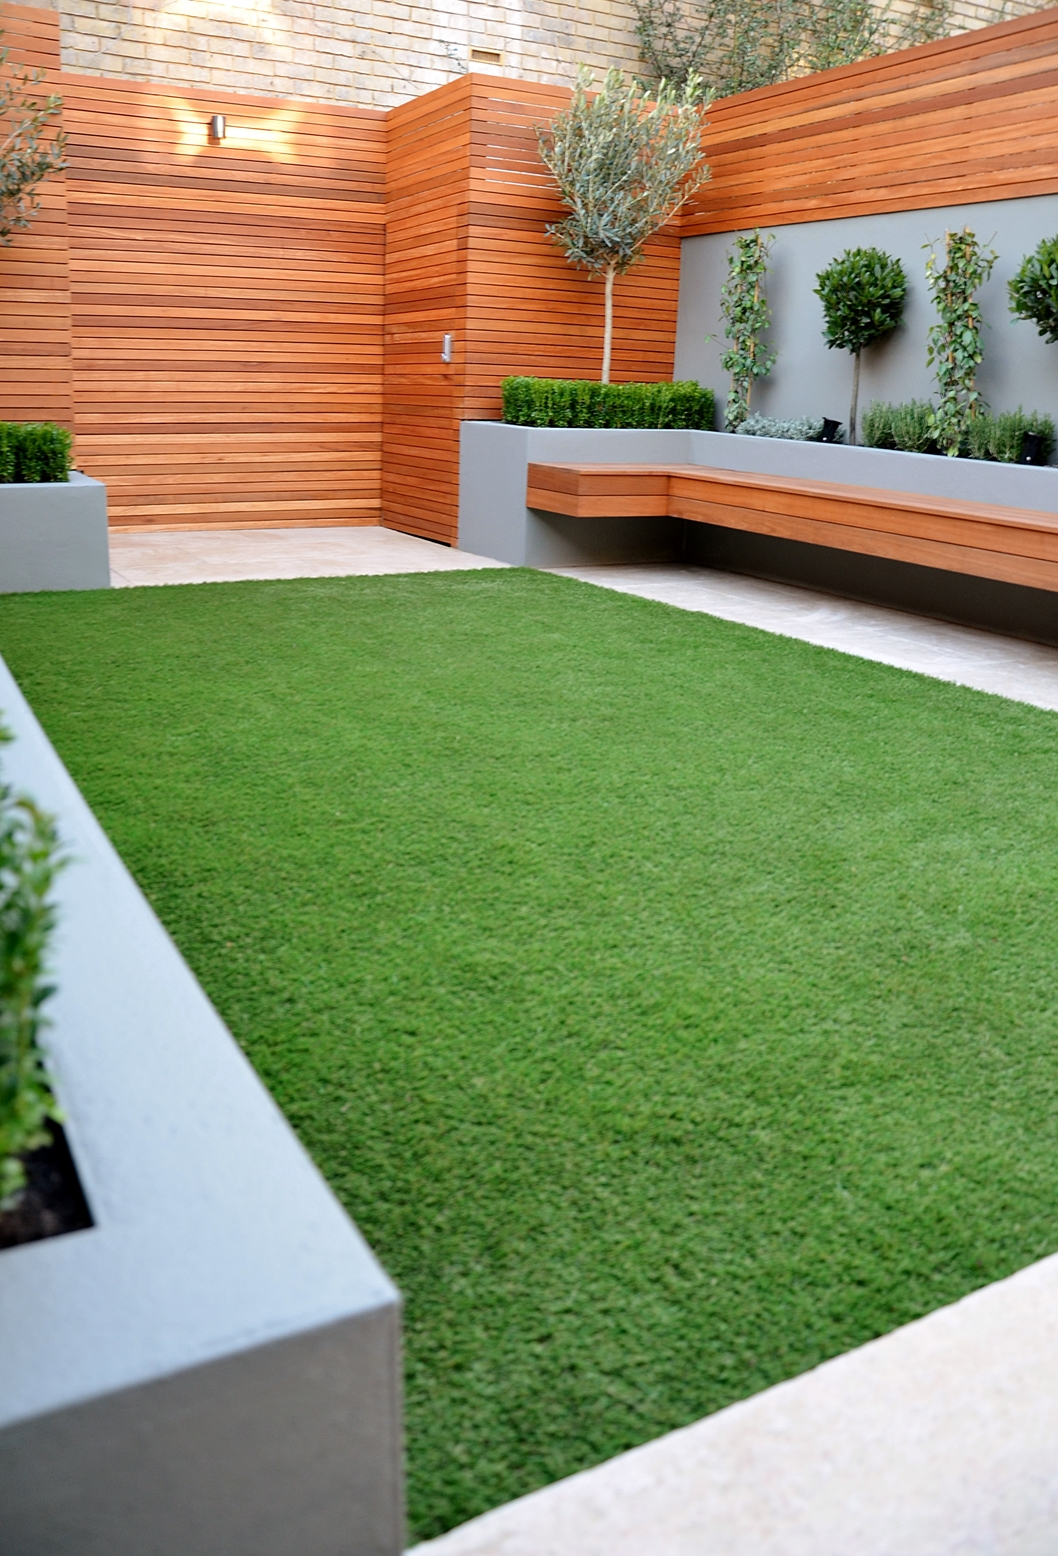 modern small agdren design ideas anewgarden london